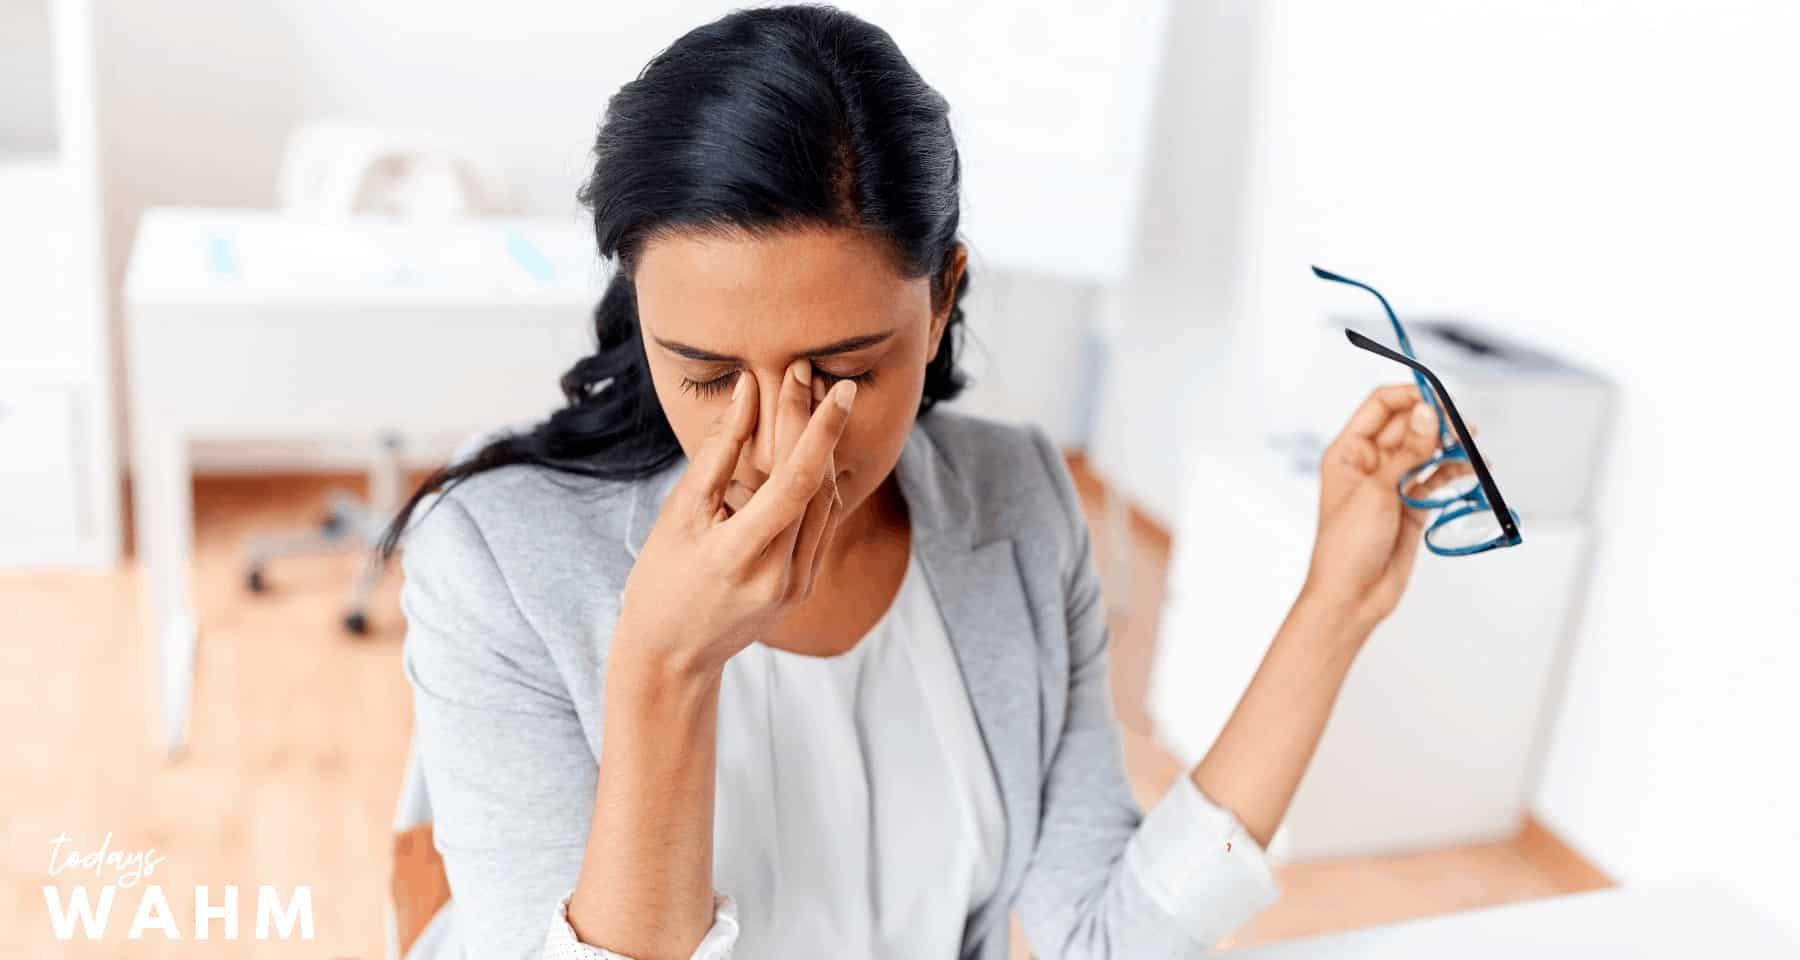 Annoying Problems WAHMs Deal With On A Regular Basis